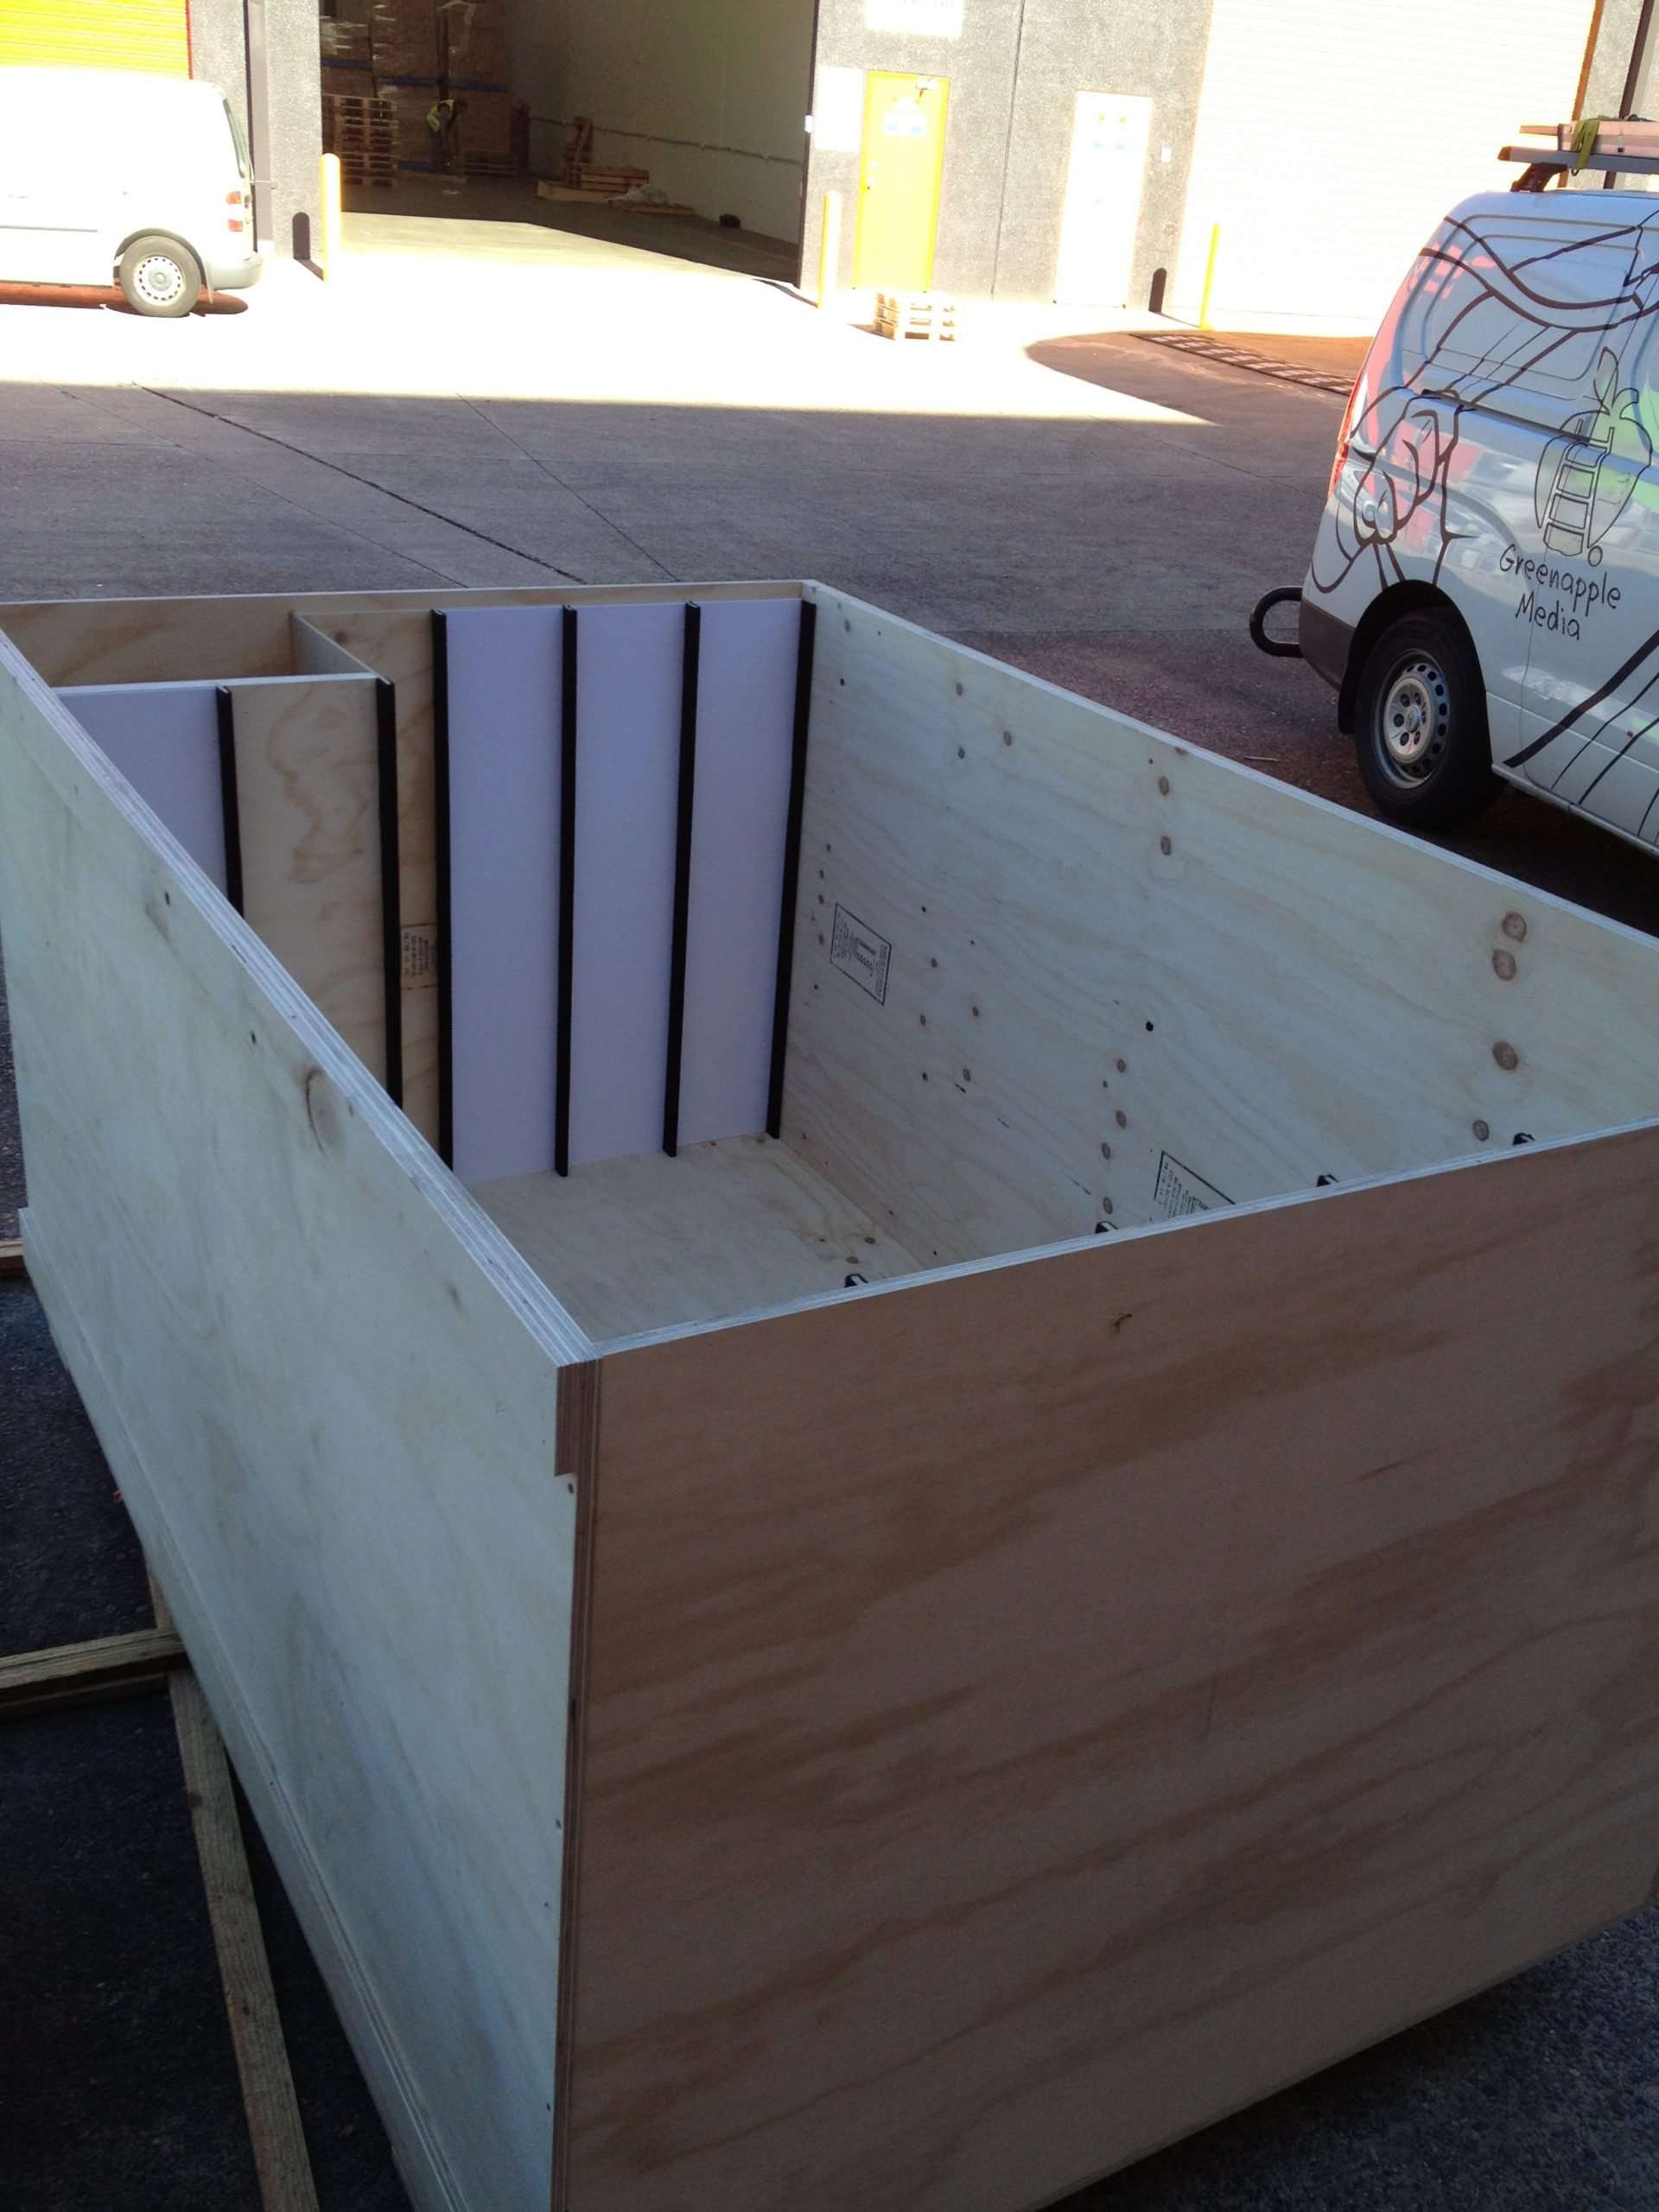 Crate with Internal dividers